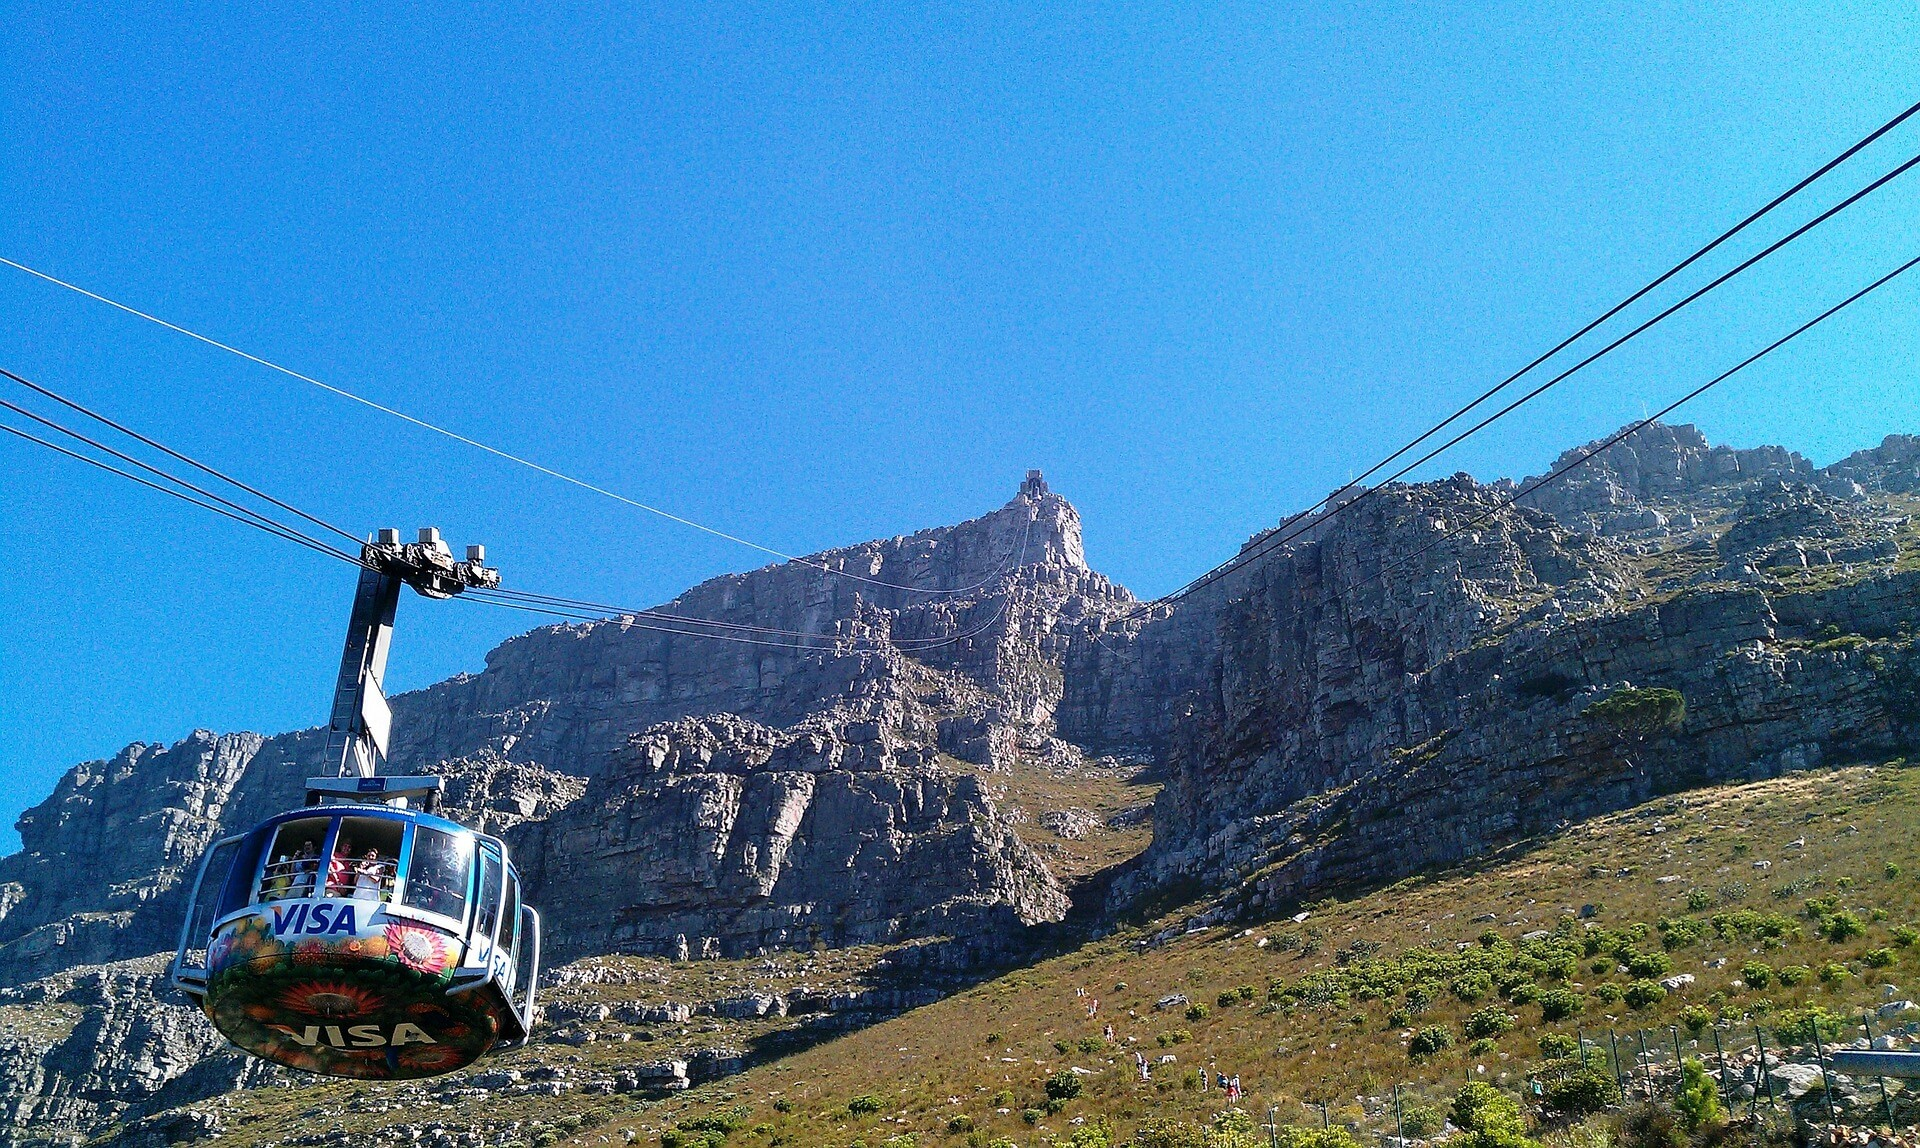 Taking the Cable Car up Table Mountain is an awesome day out!